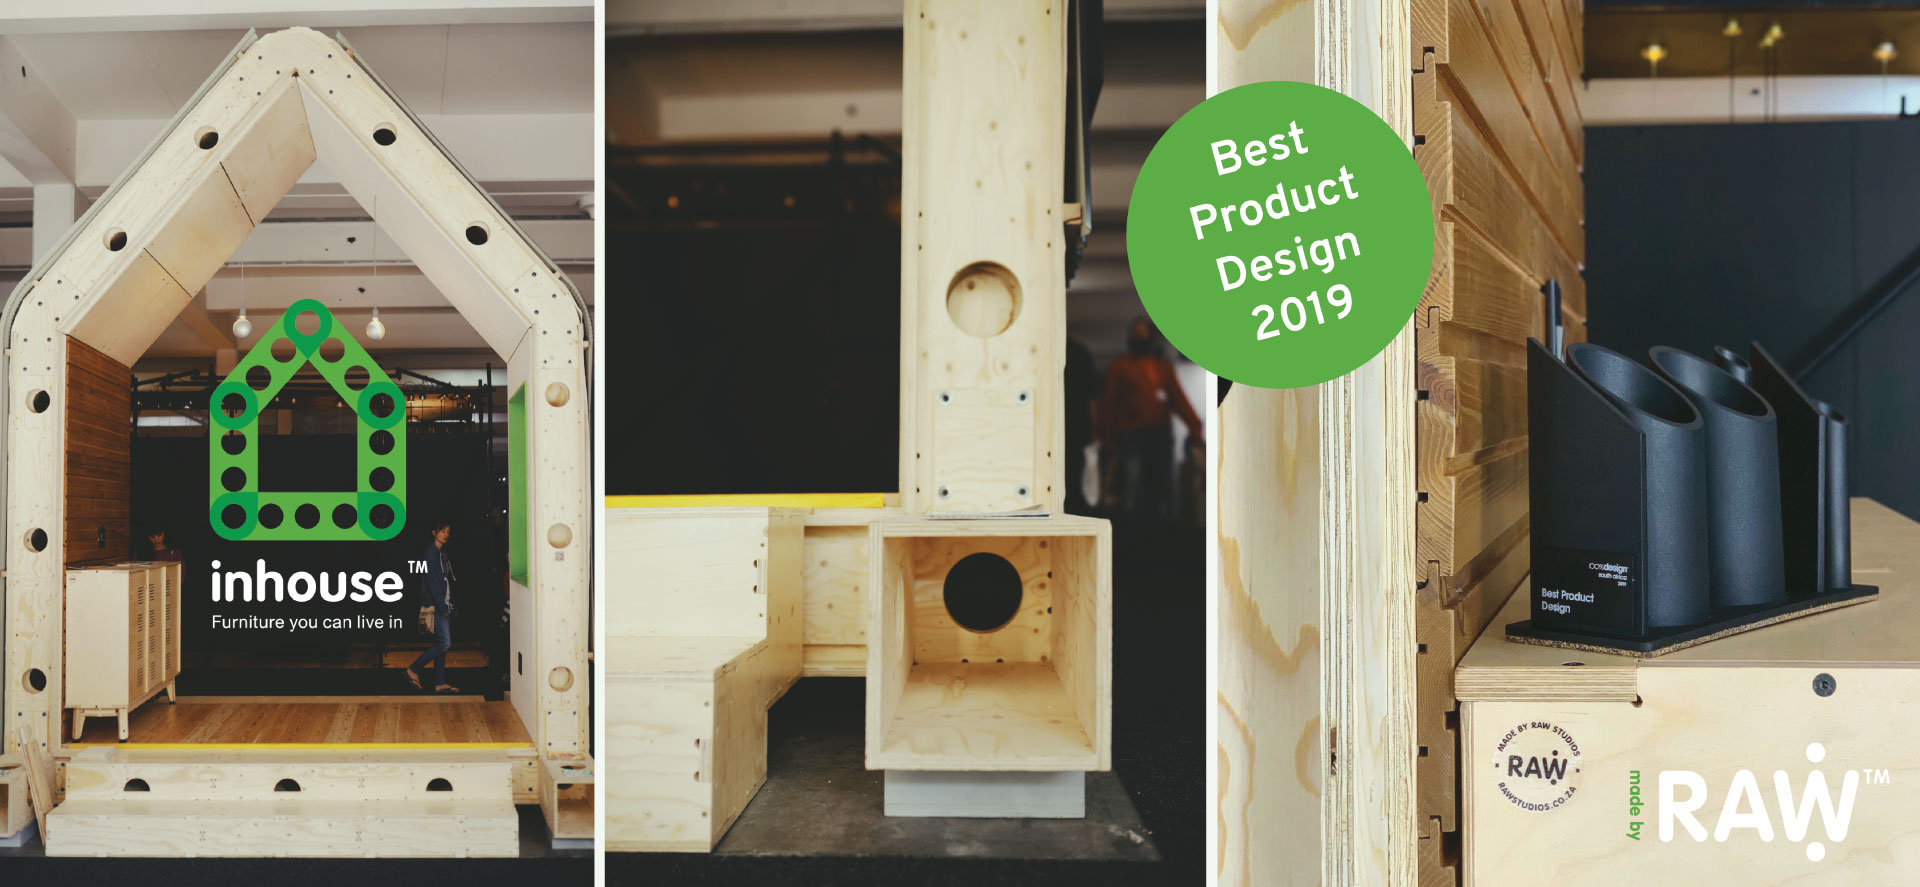 RAW Studios 100% Design 2019 Best Product Design Award Inhouse: Plywood Home